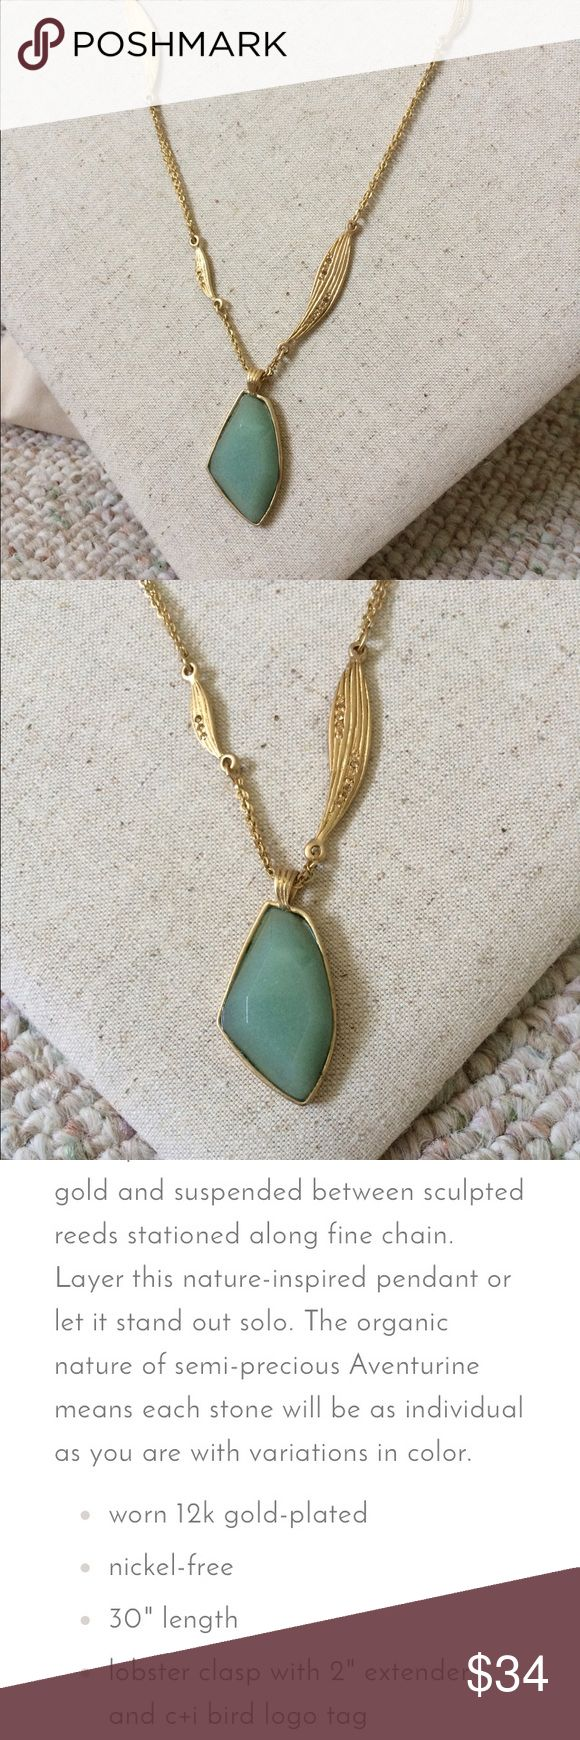 """🎈SALE! C + I Gilded Reed Aventurine necklace Gorgeous! And only taken out for photos. Brand new. 30"""" chain, gold plated, semi previous Aventurine stone. Retails for $68. Nickel free. Jewelry Necklaces"""